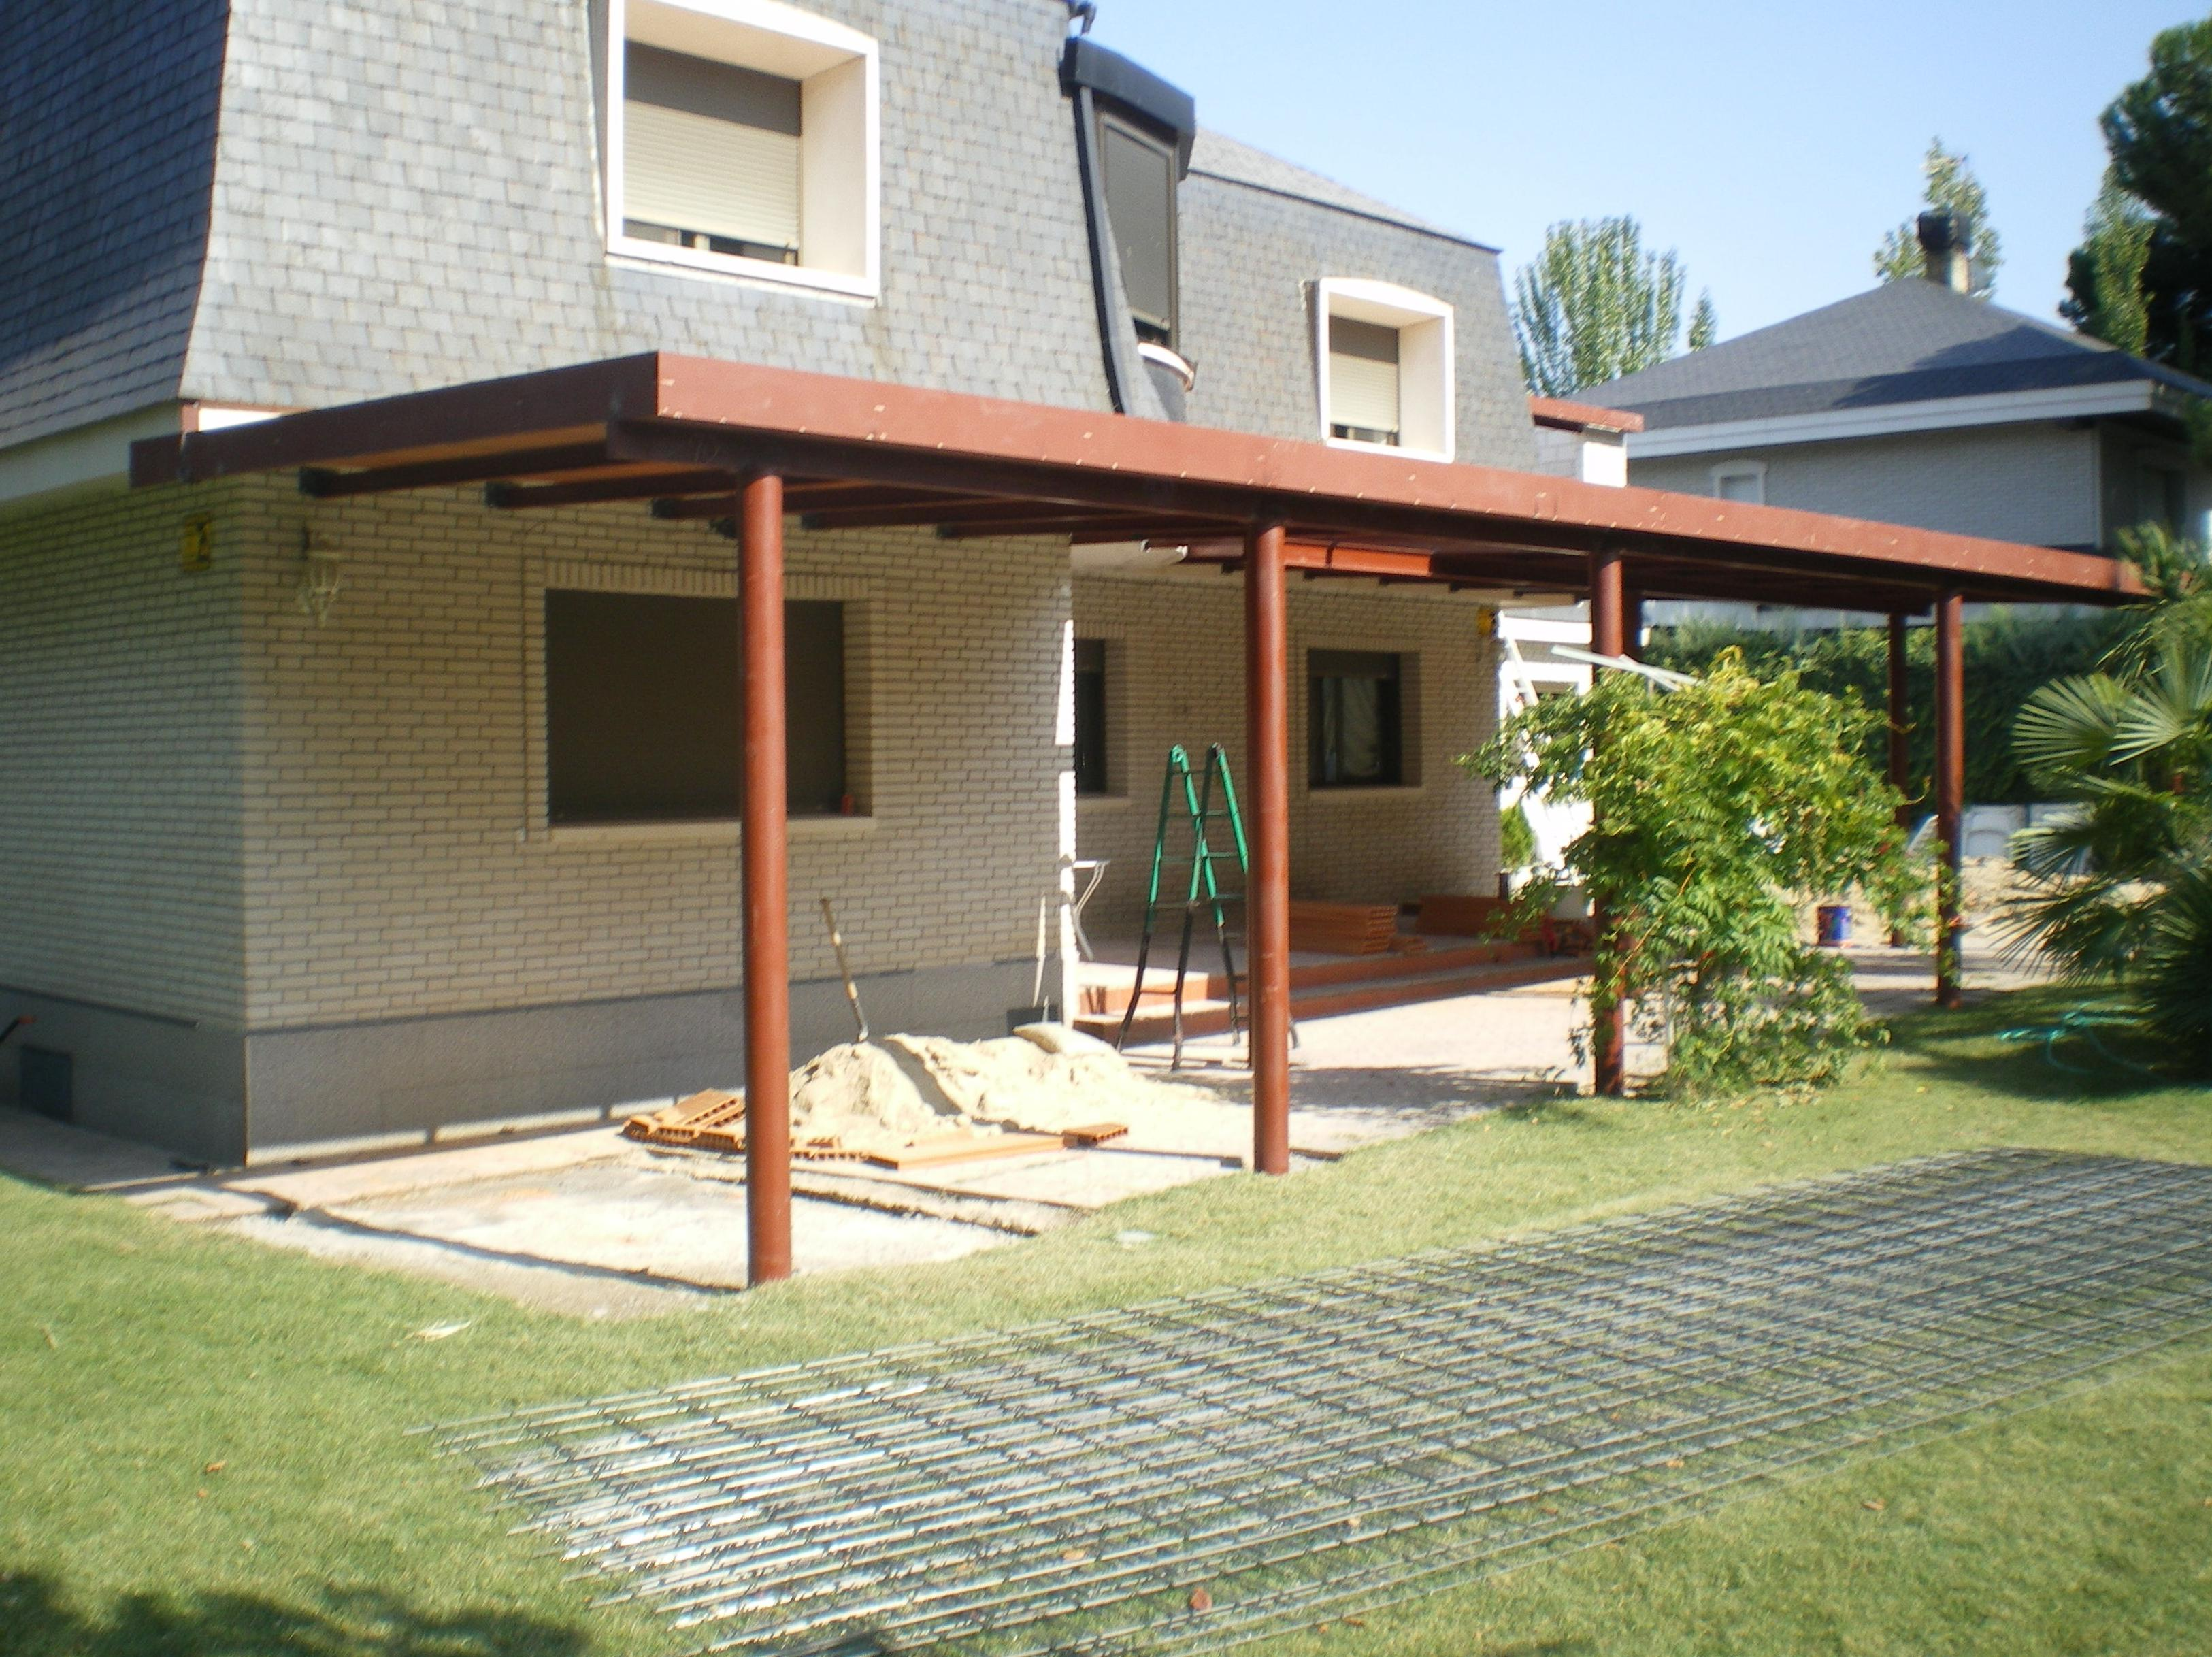 Porches de jardin con zona de estar y comedor casas de for Porches de hierro